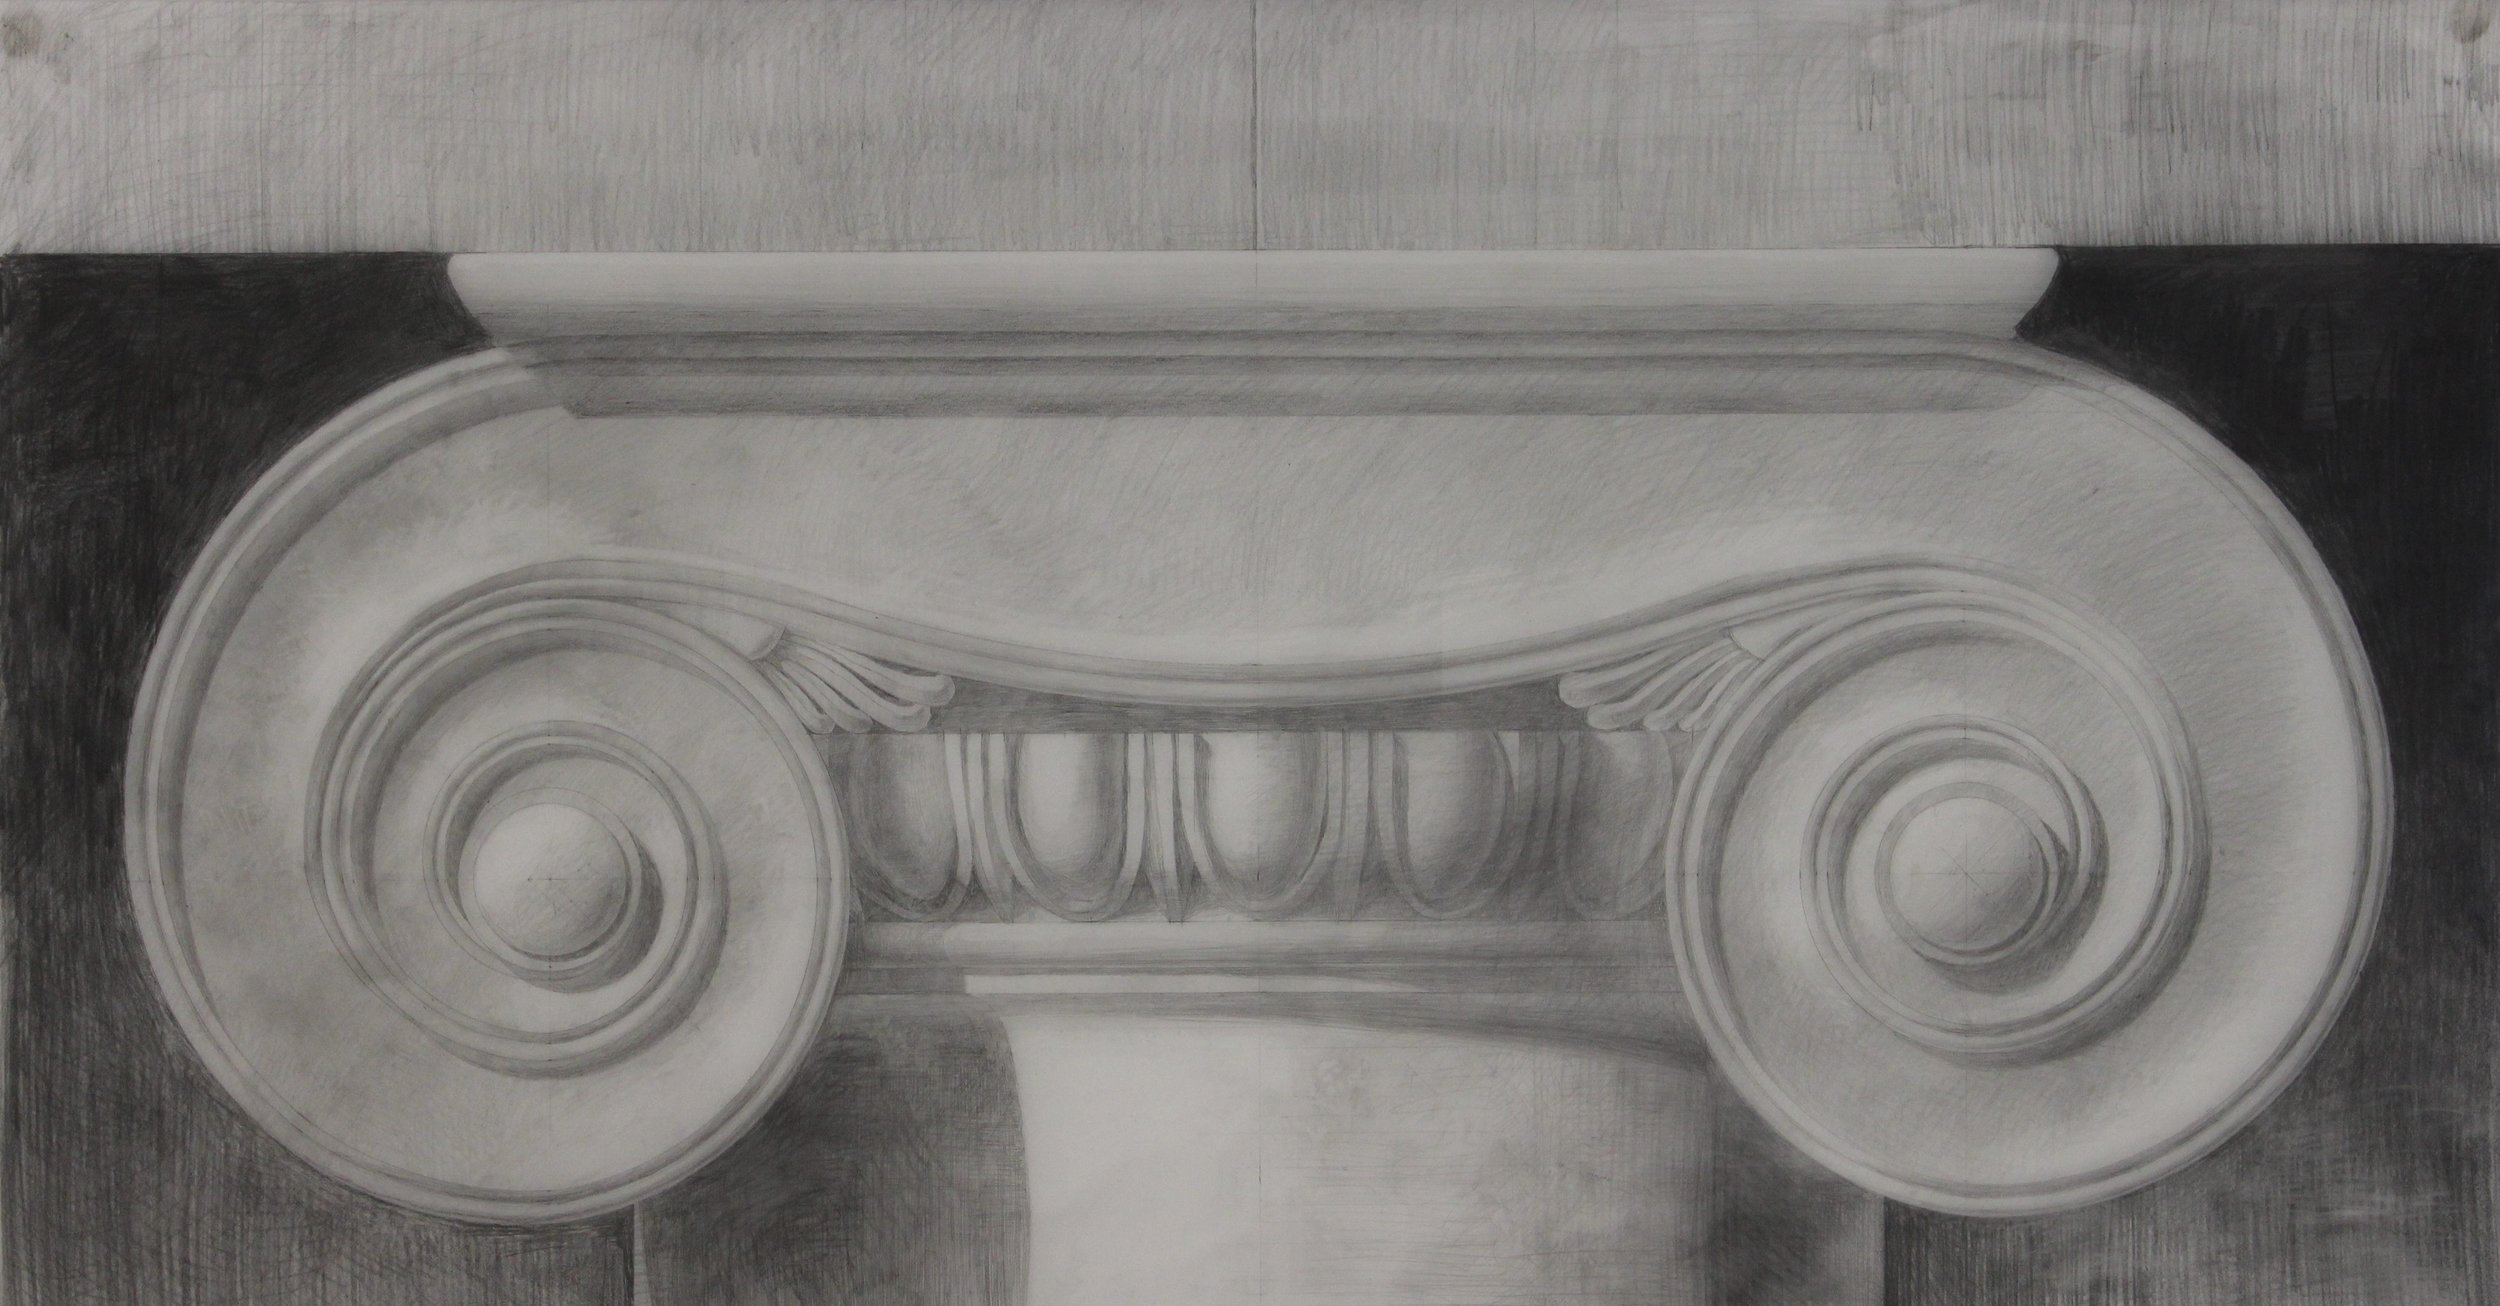 Ionic Capital by Francis Terry 750 x 1360mm.jpg